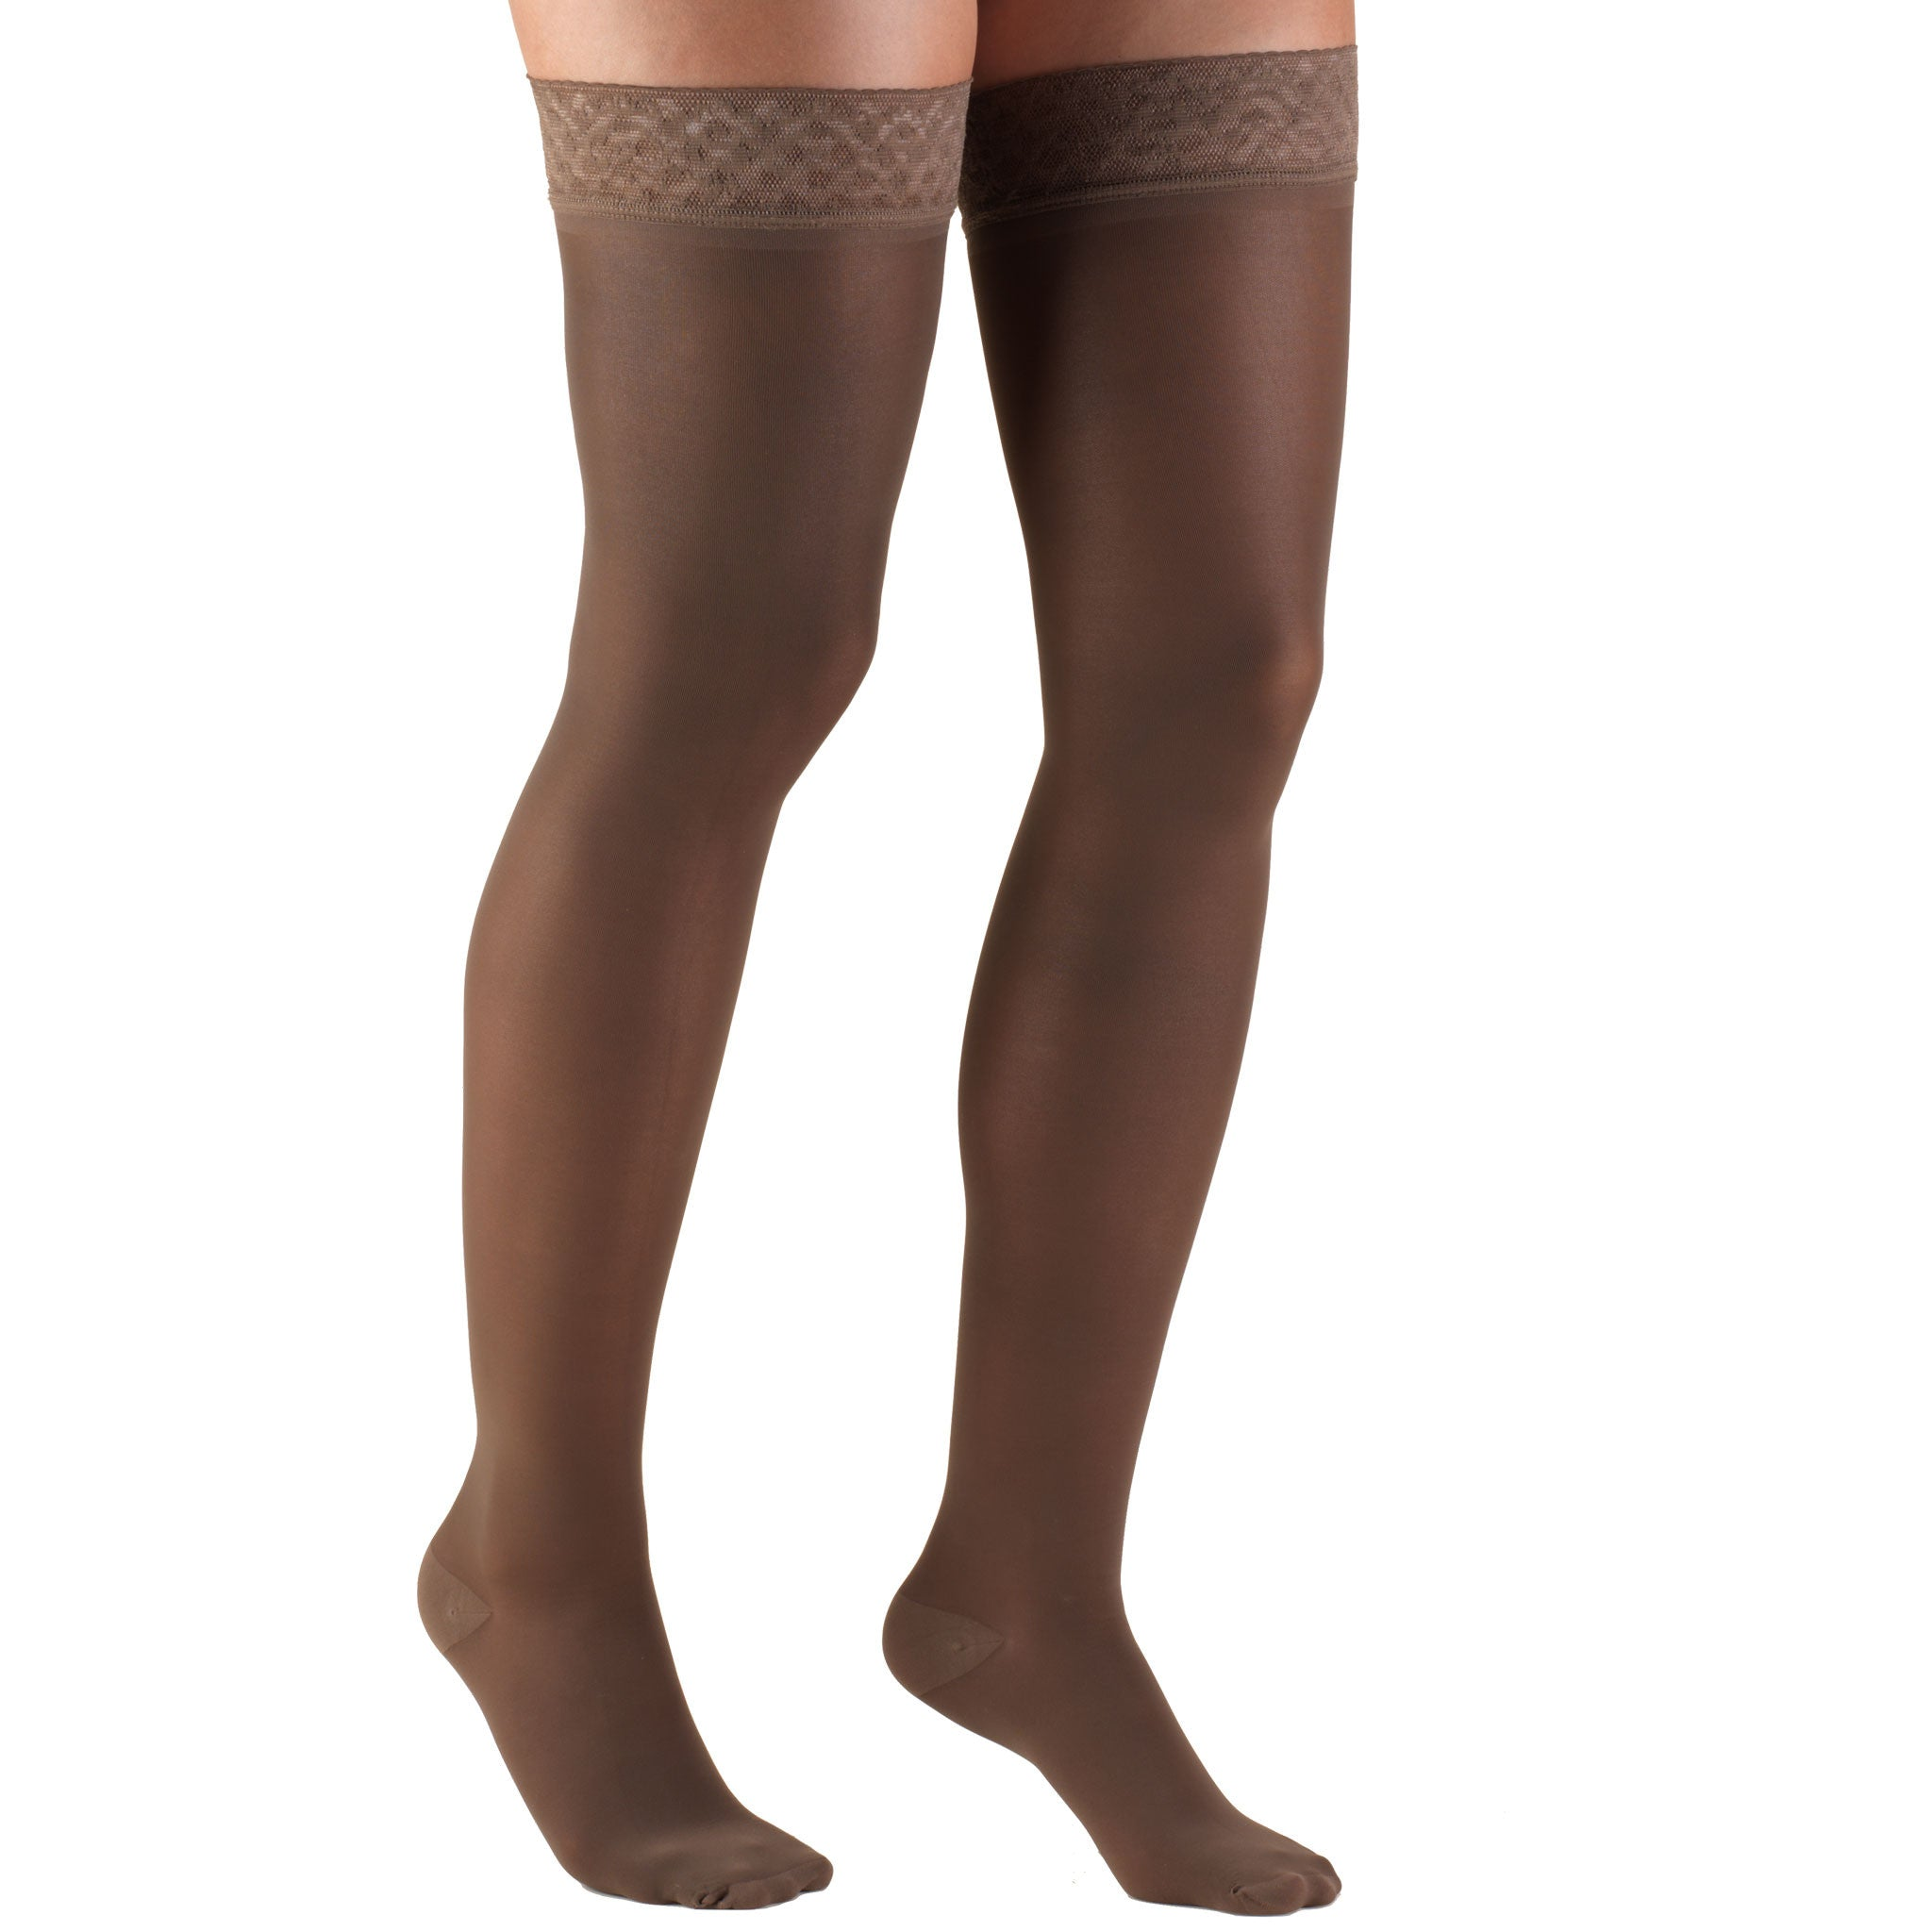 THIGH HIGH CLOSED TOE TAUPE TRUSHEER STOCKINGS